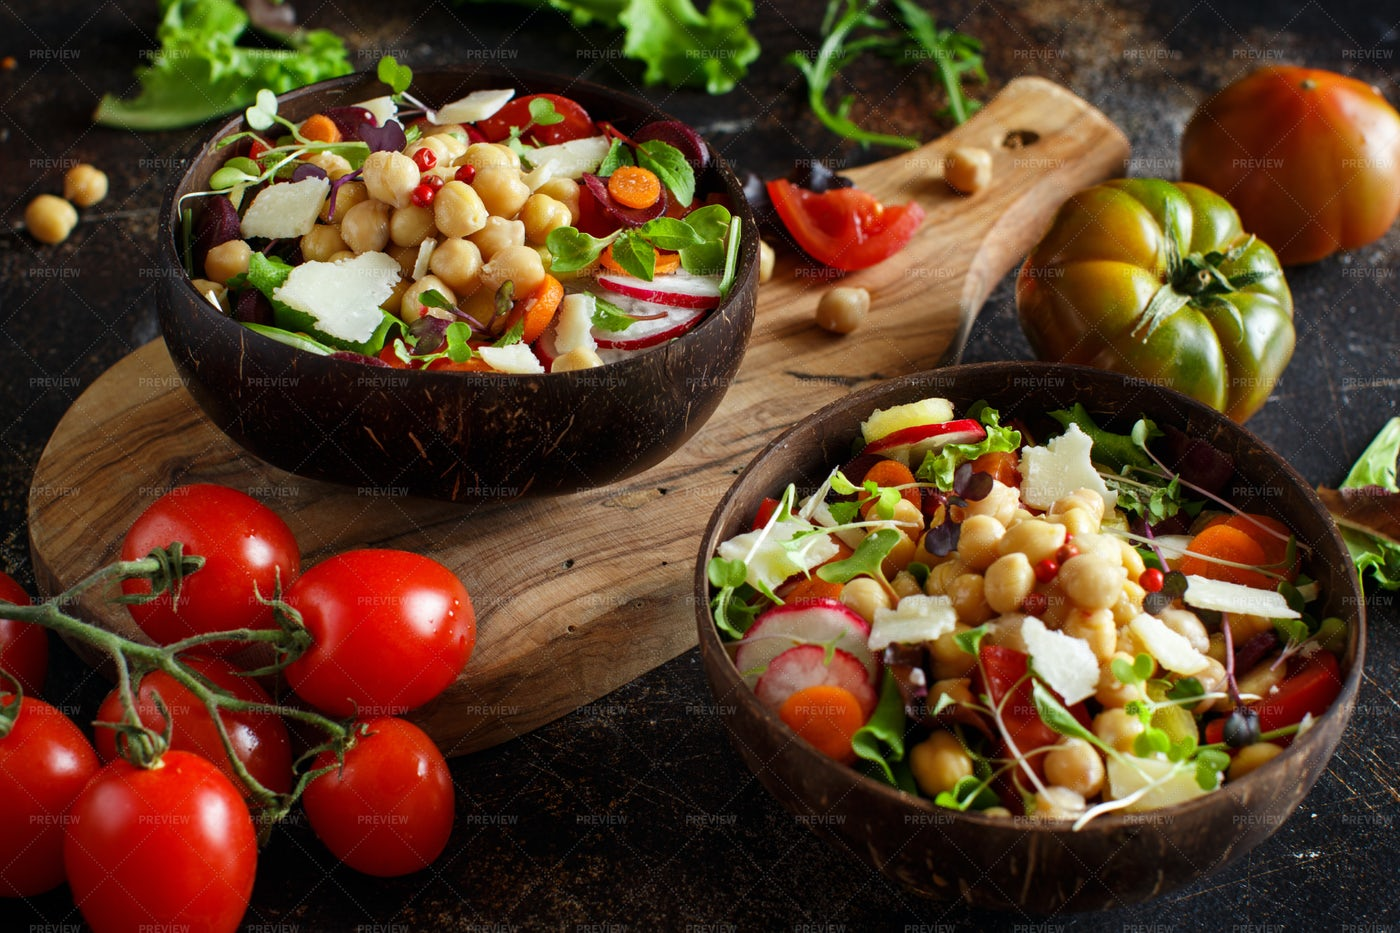 Chickpea Salad With Vegetables: Stock Photos